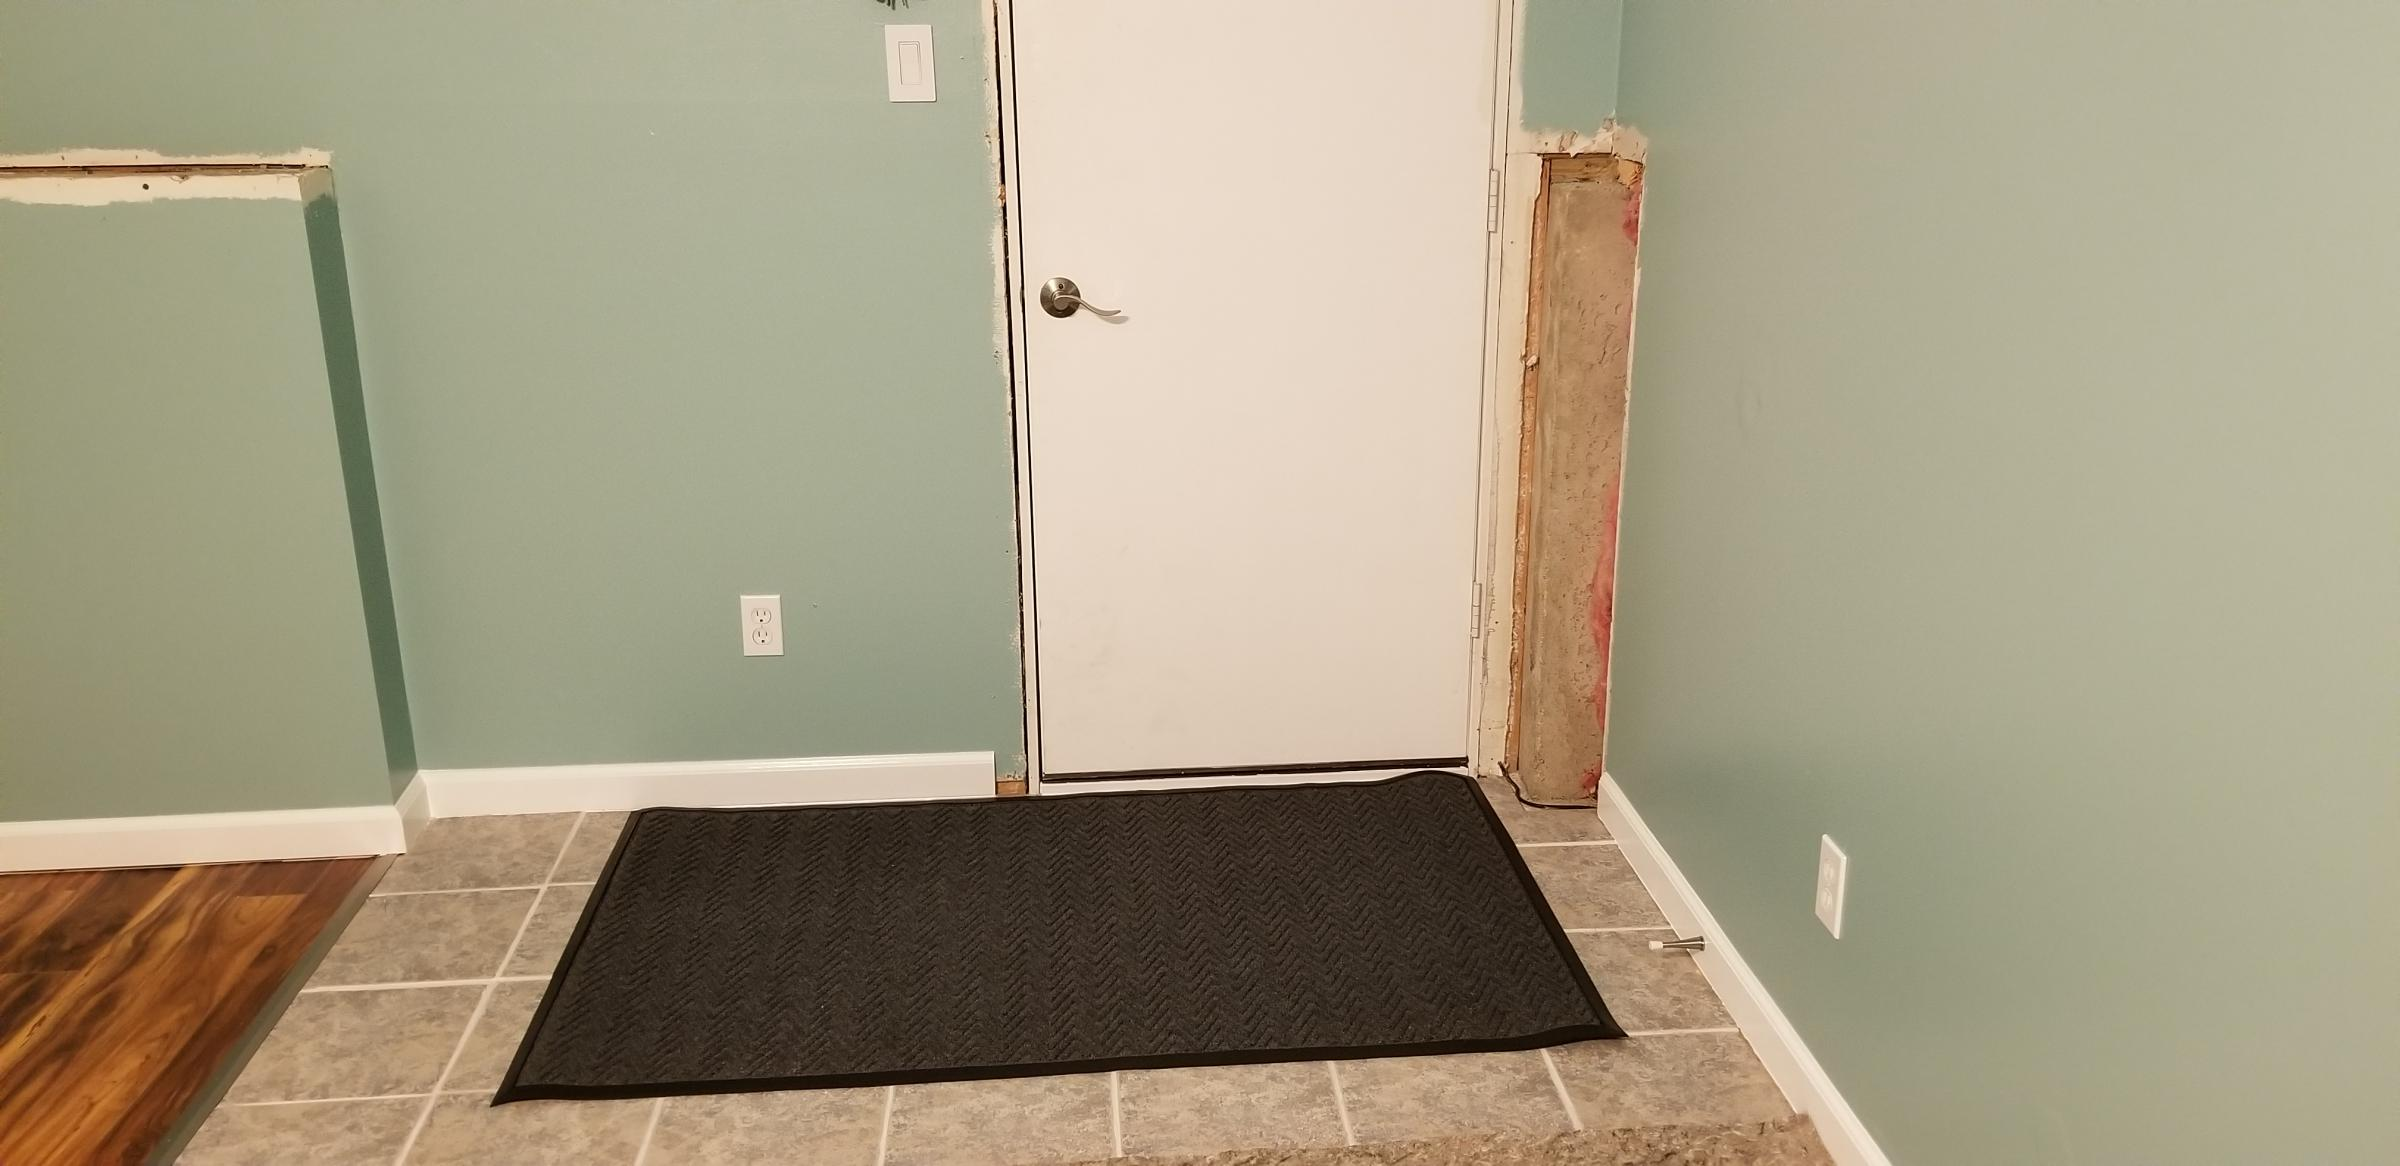 Covering this exposed corner an easy way?-15713092947584681364369632818832_1571309317613.jpg